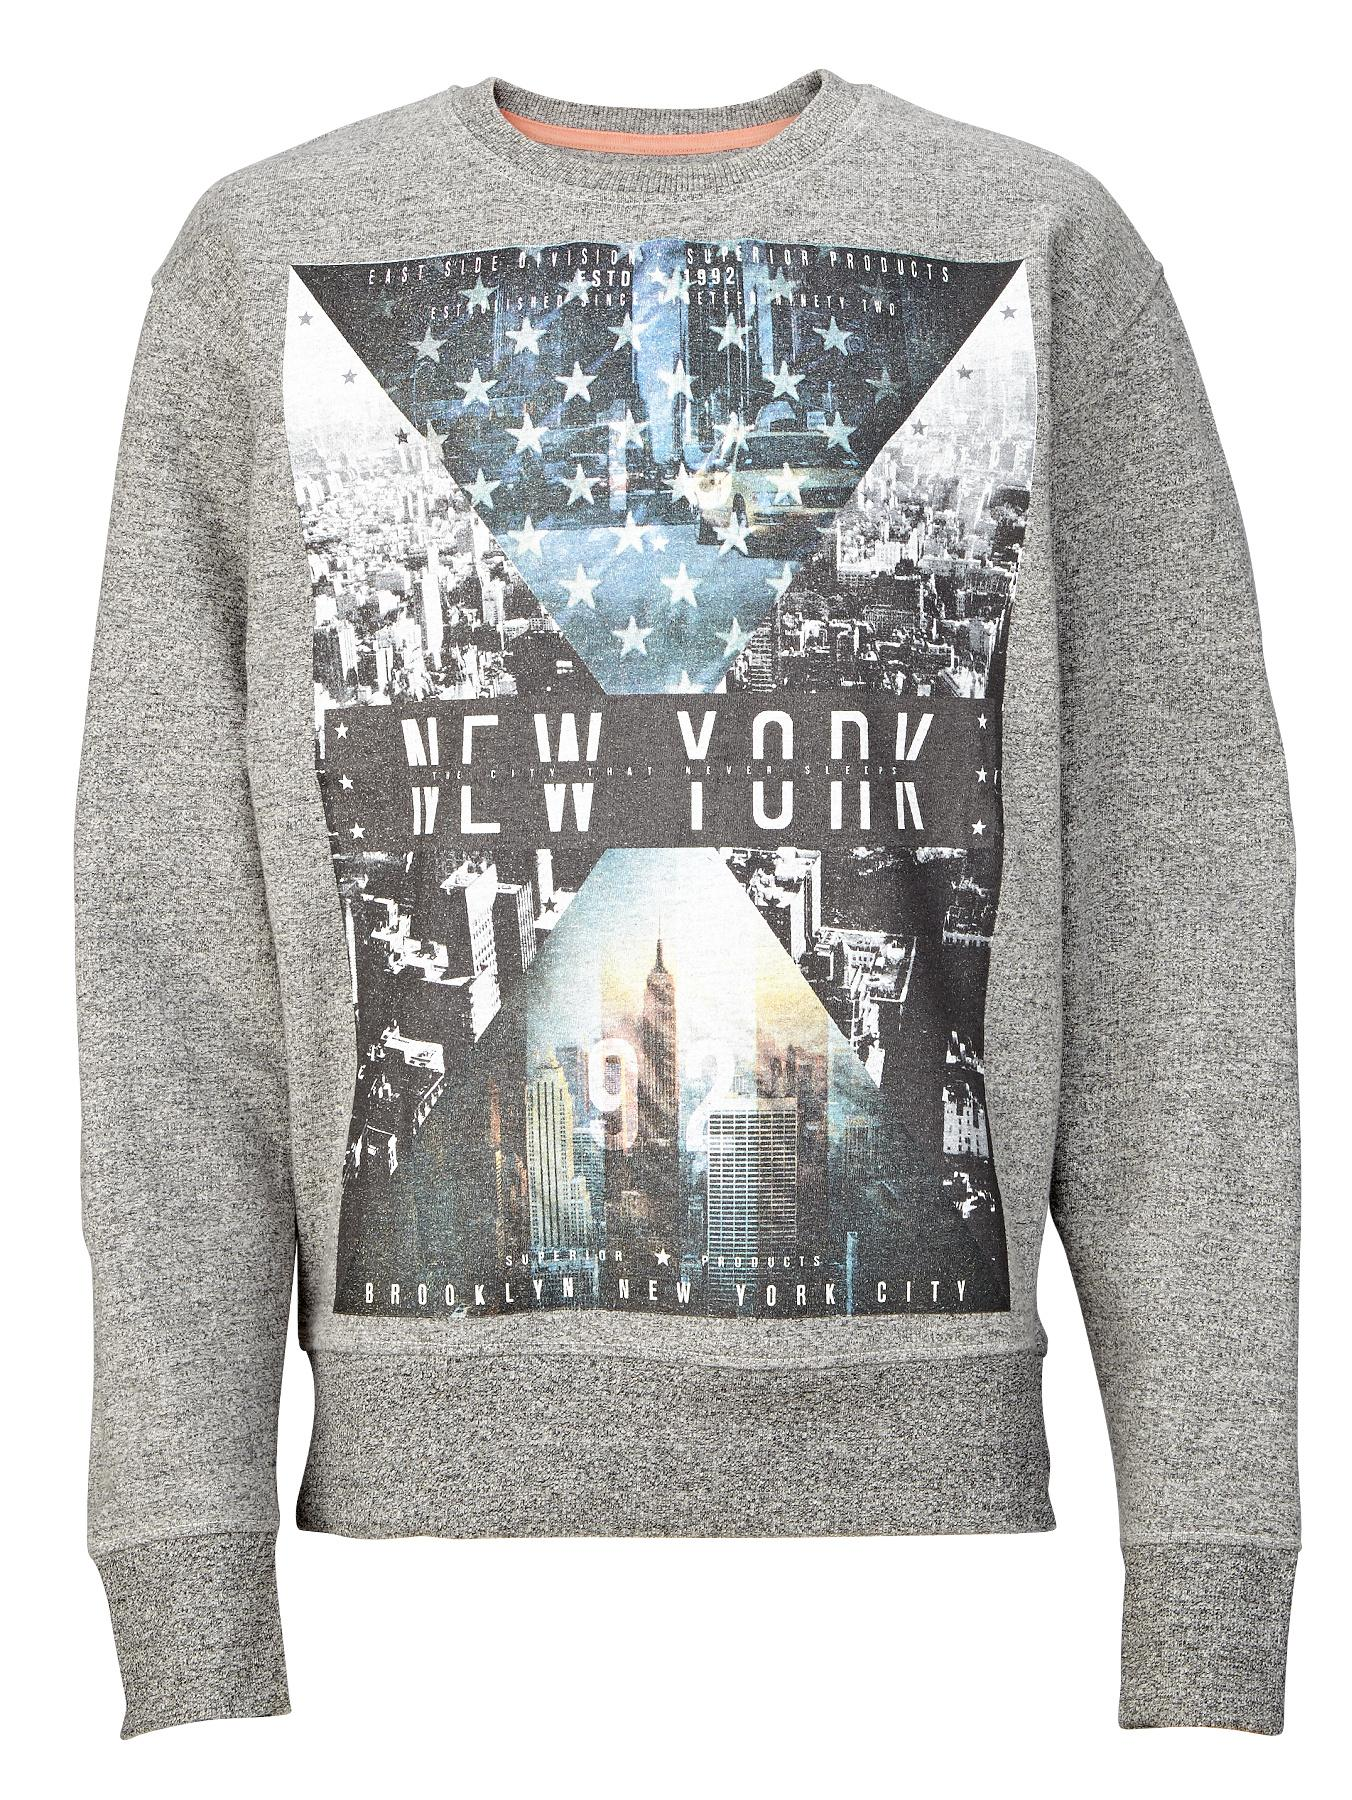 Demo Boys Cityscape Crew Sweatshirt - Grey, Grey